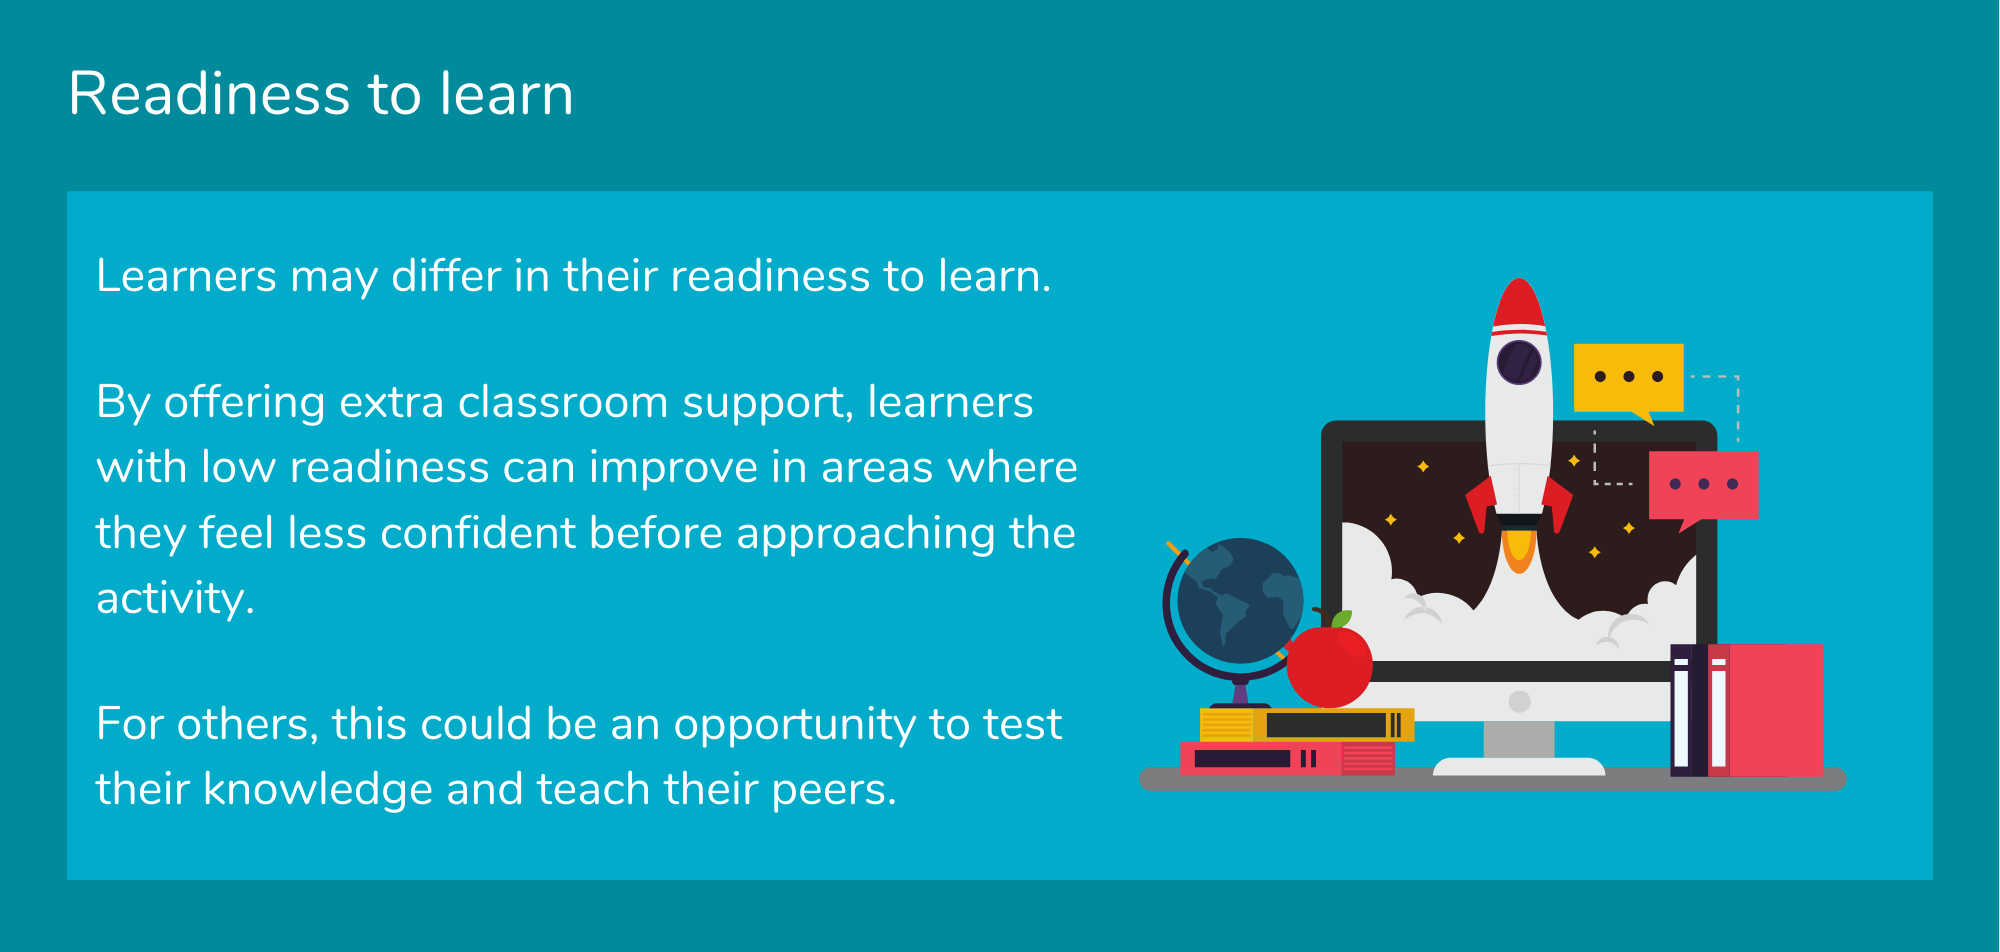 Readiness to learn tip